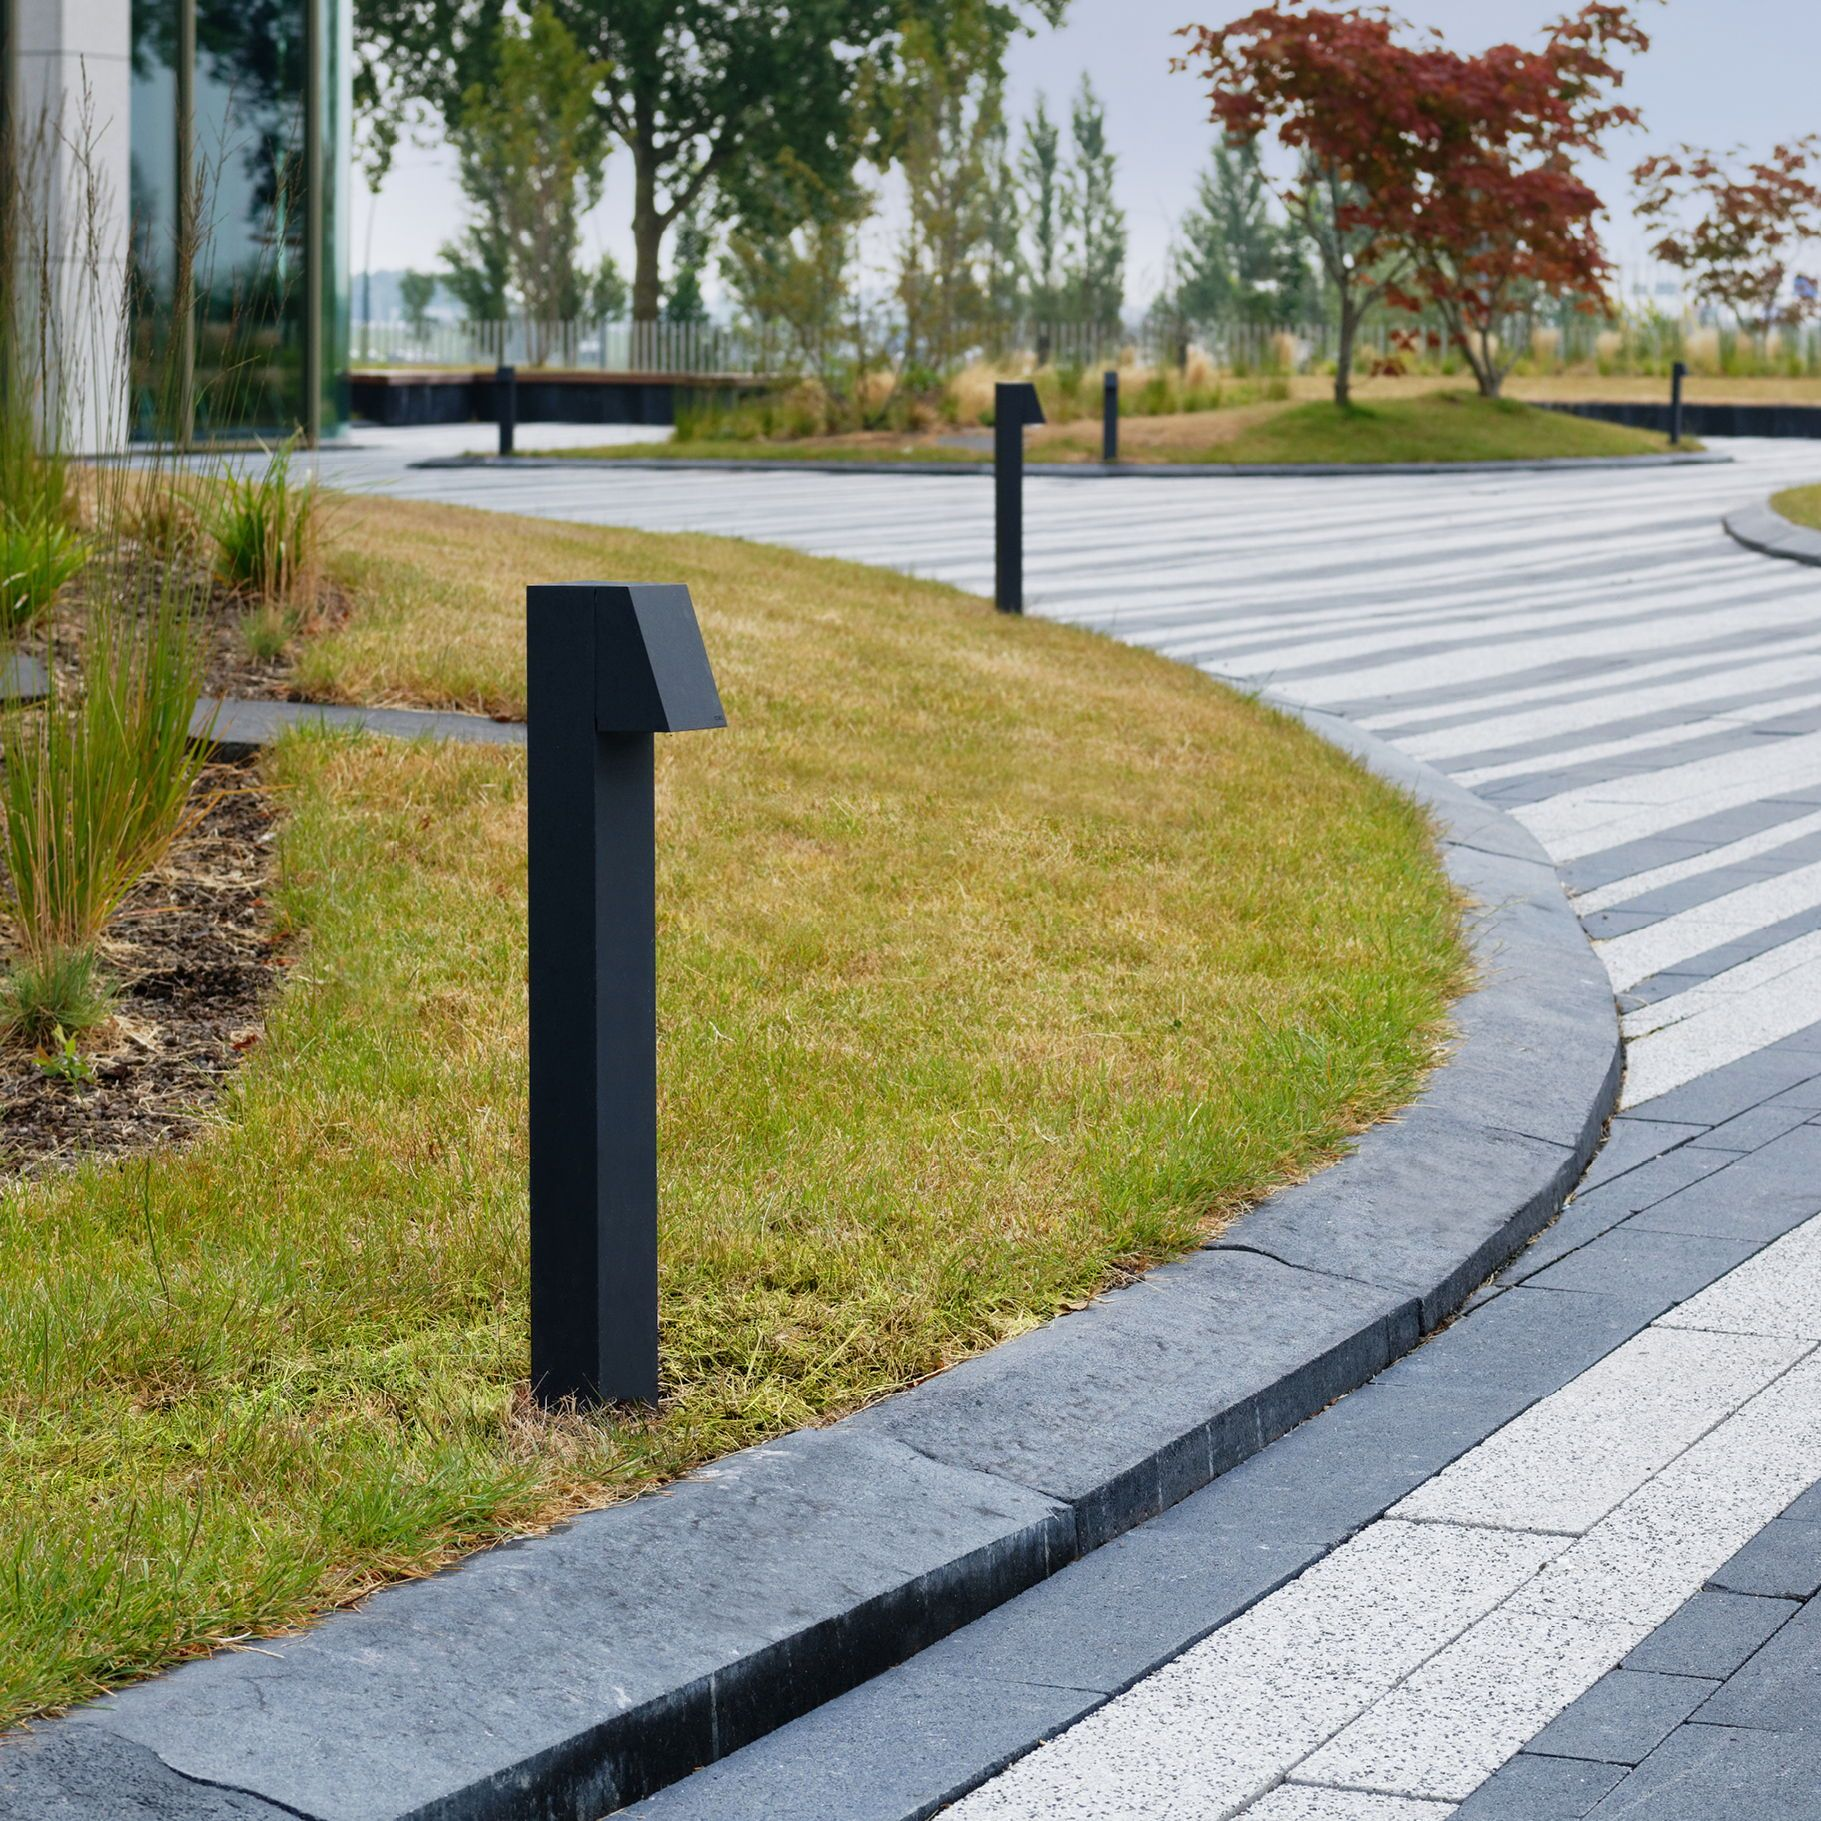 Bega Led Garden And Pathway Luminaires With Light Directed Downwards For Illuminating Paths Terraces And House Entrances Luminai Garten Led Gartenarchitektur